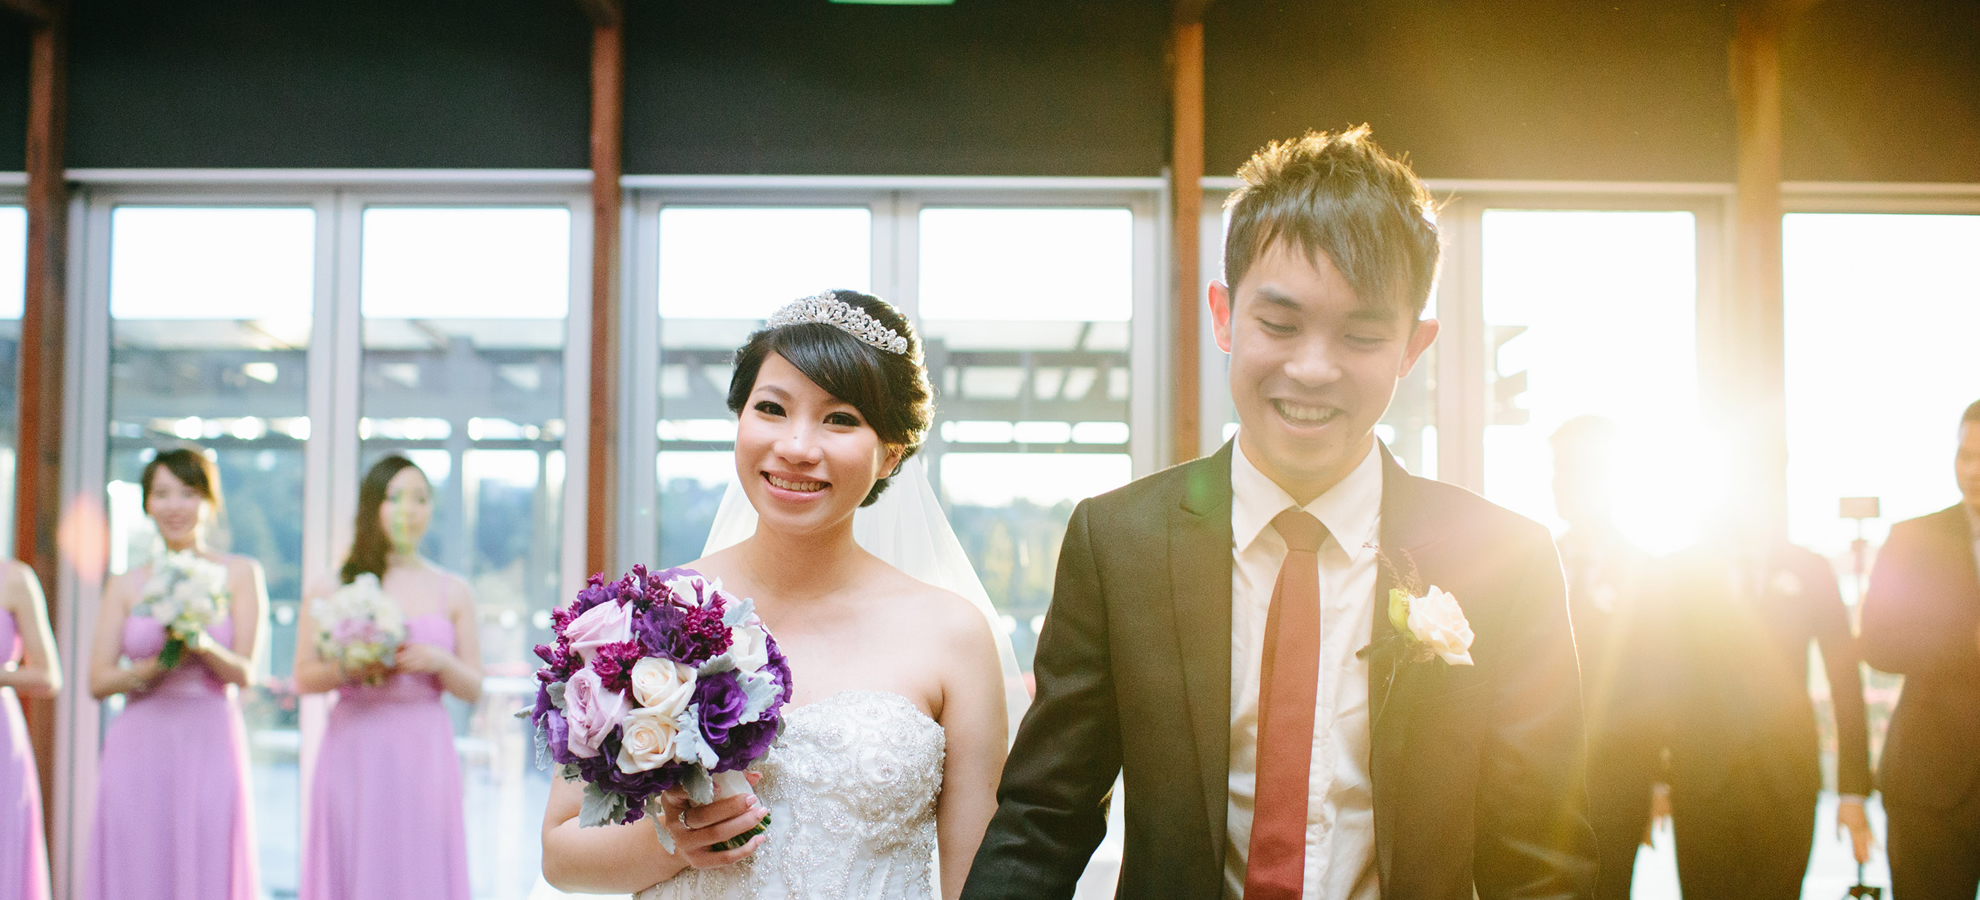 Relive the wedding moments hiring a wedding photographer